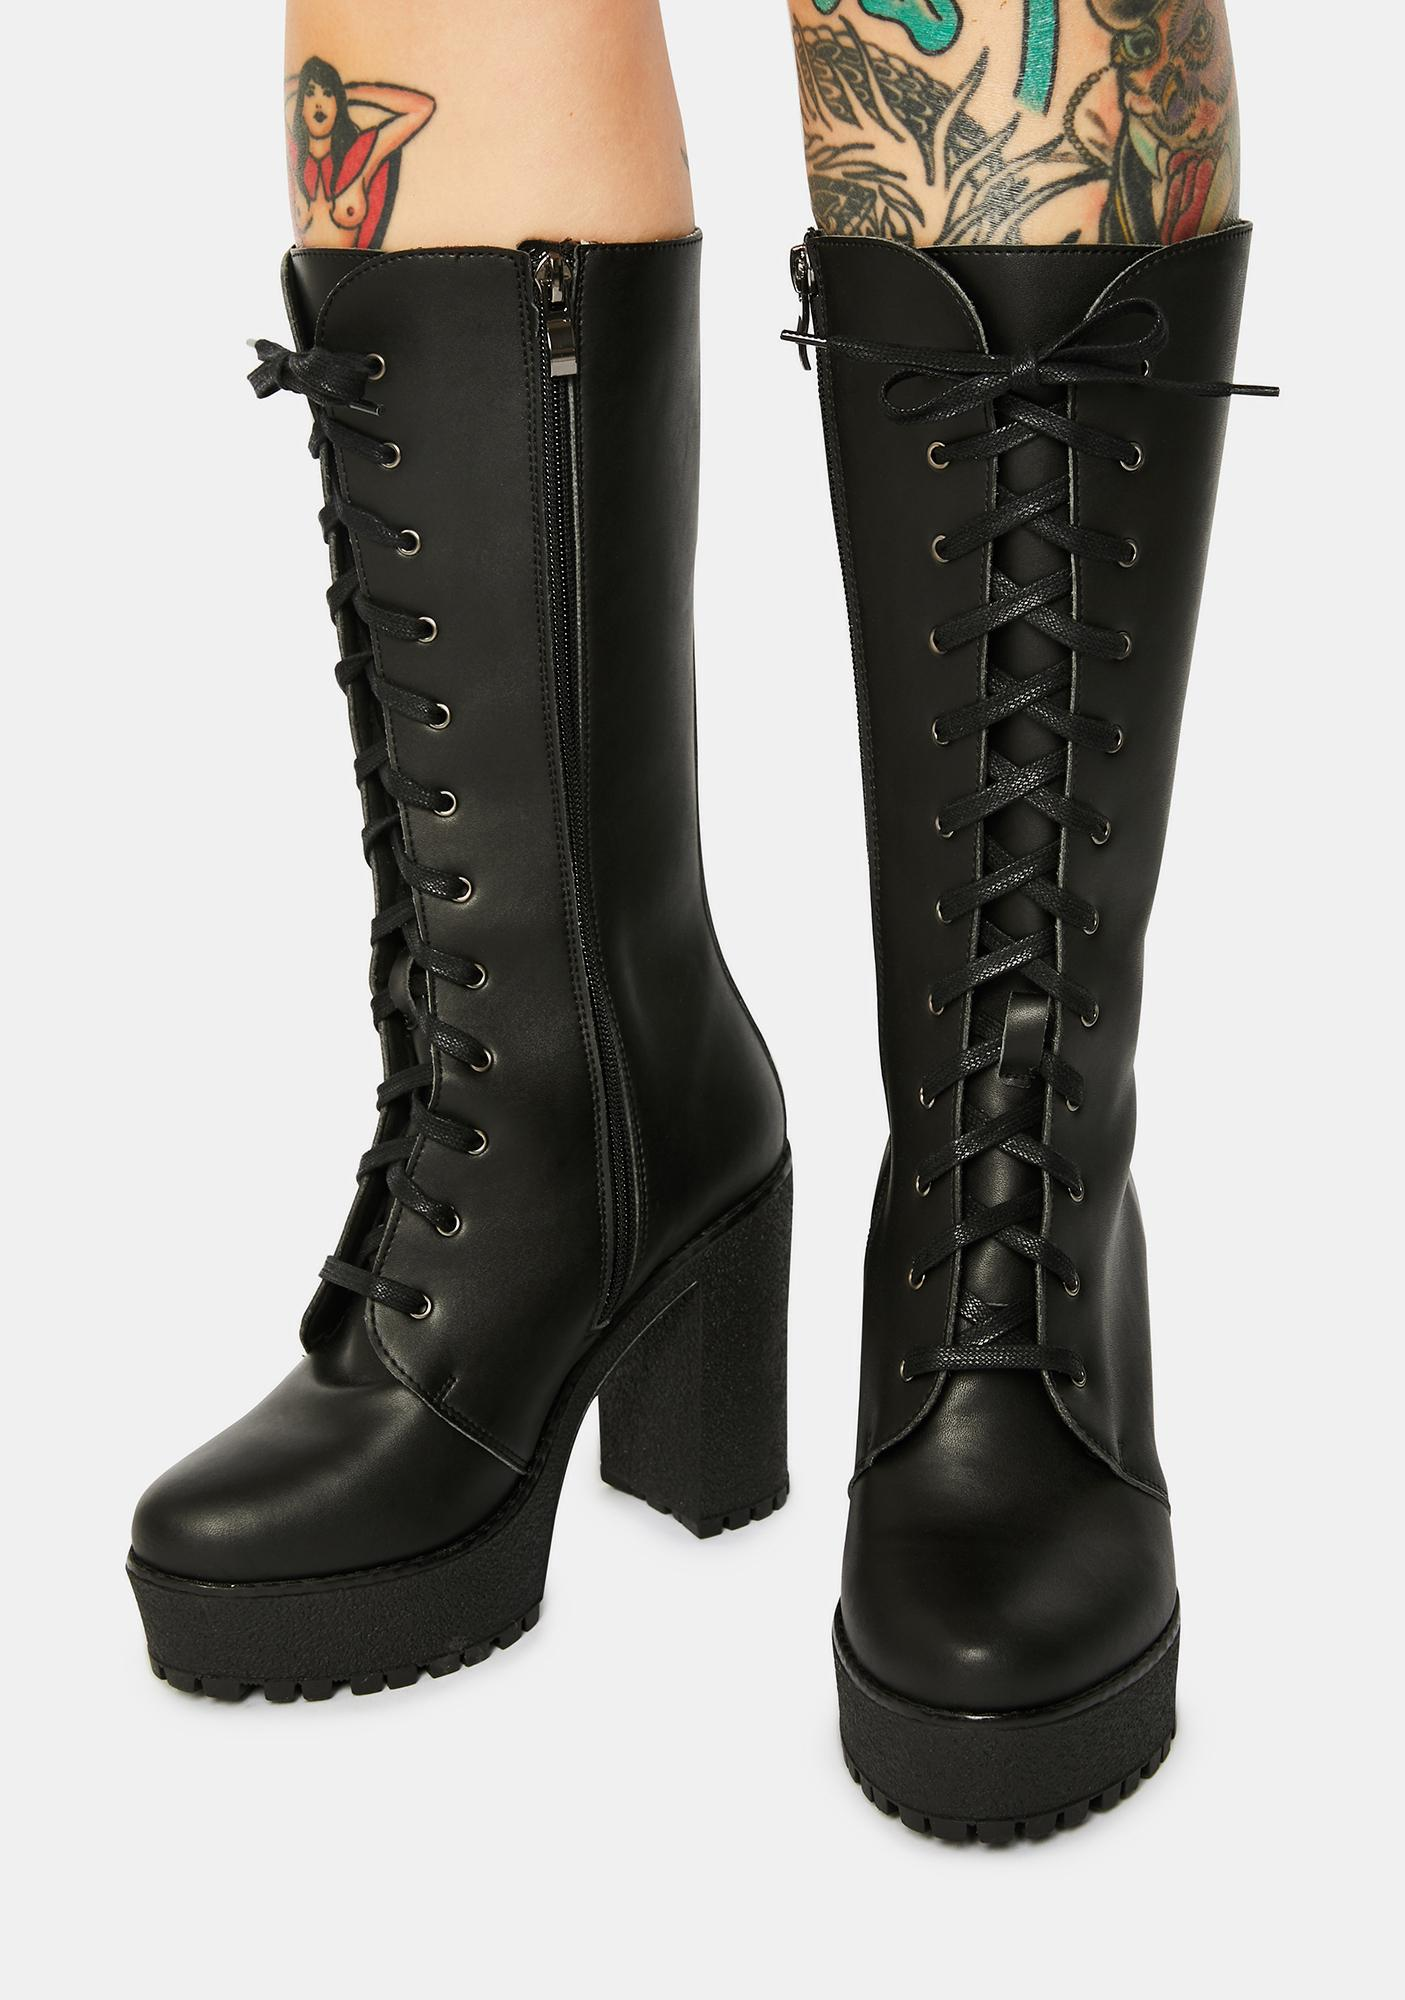 Altercore Alexa Lace Up Vegan Leather Boots